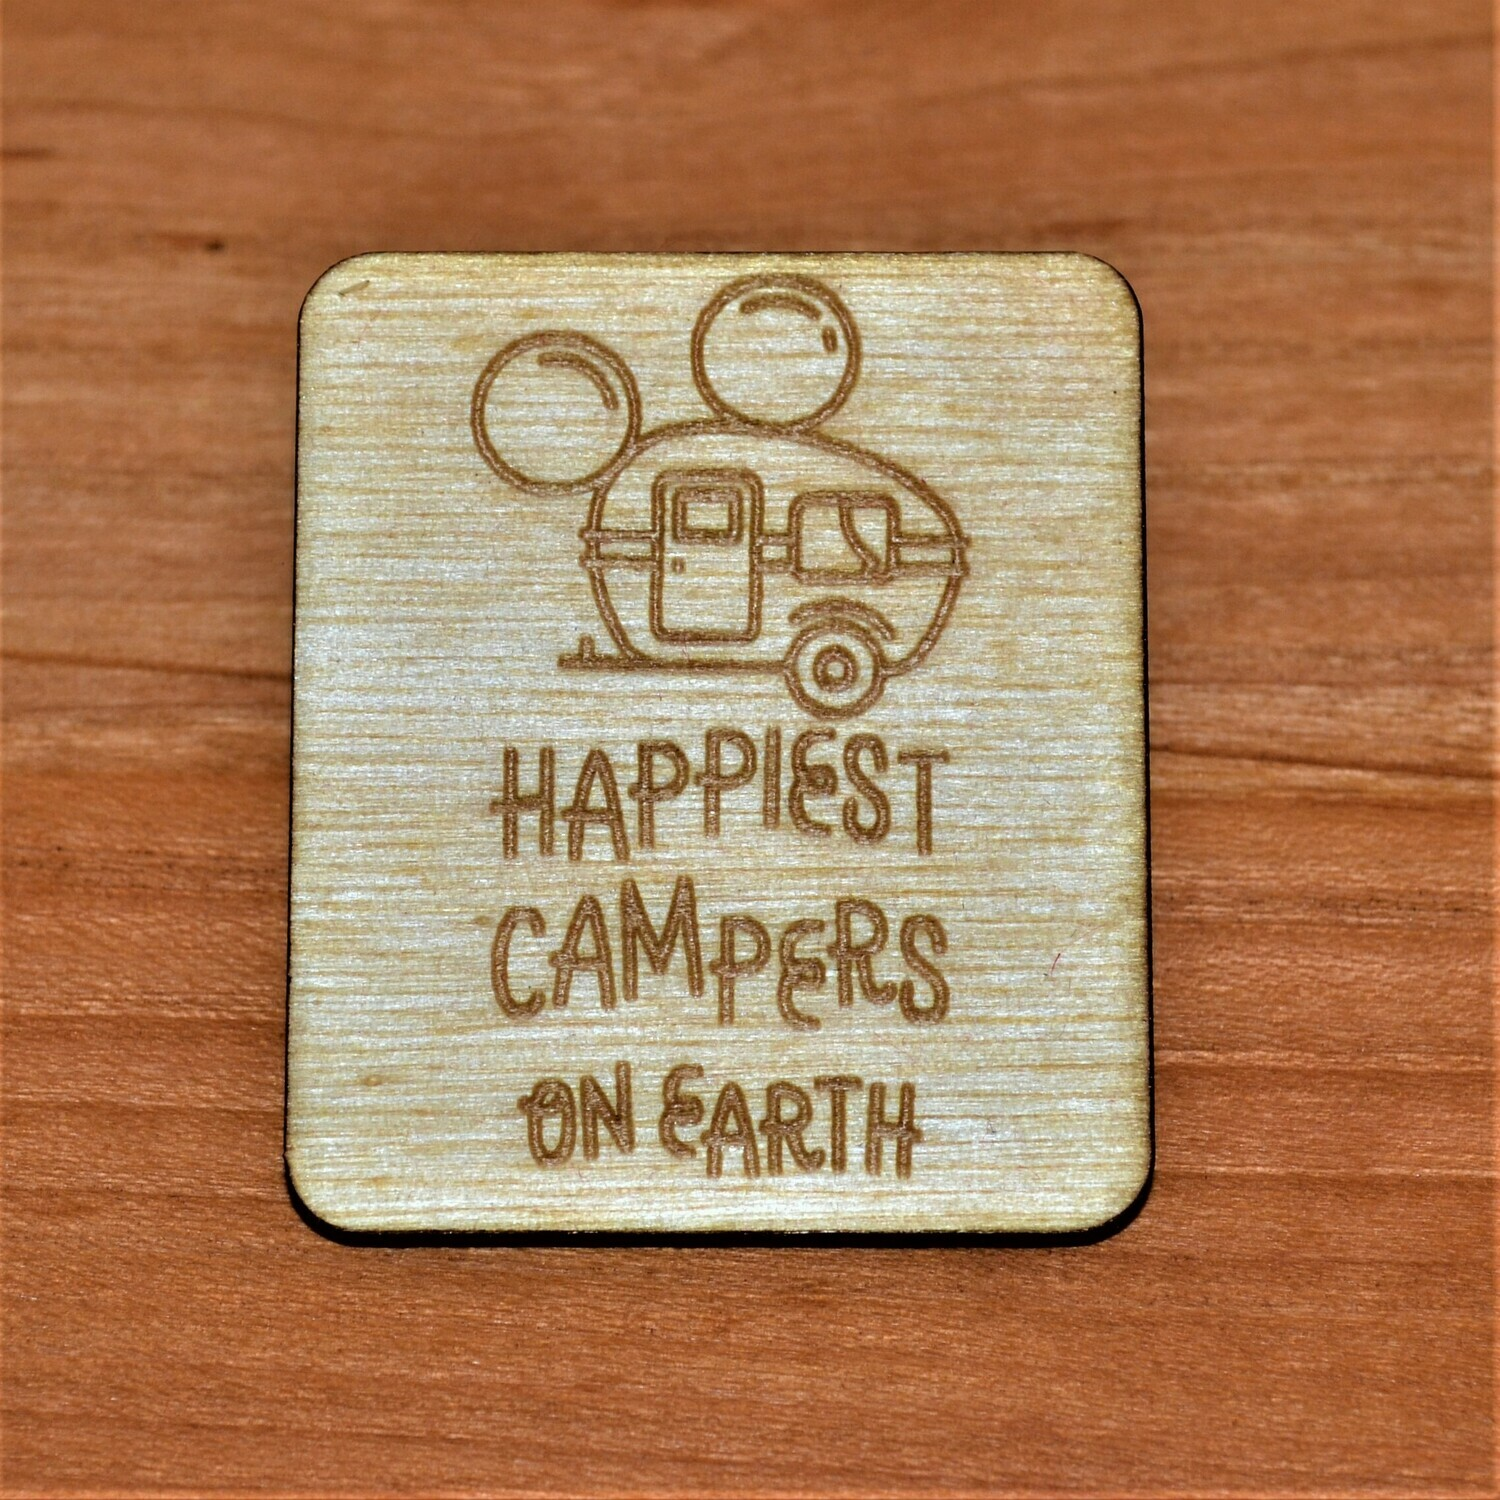 Happiest Campers on Earth Wooden Magnet